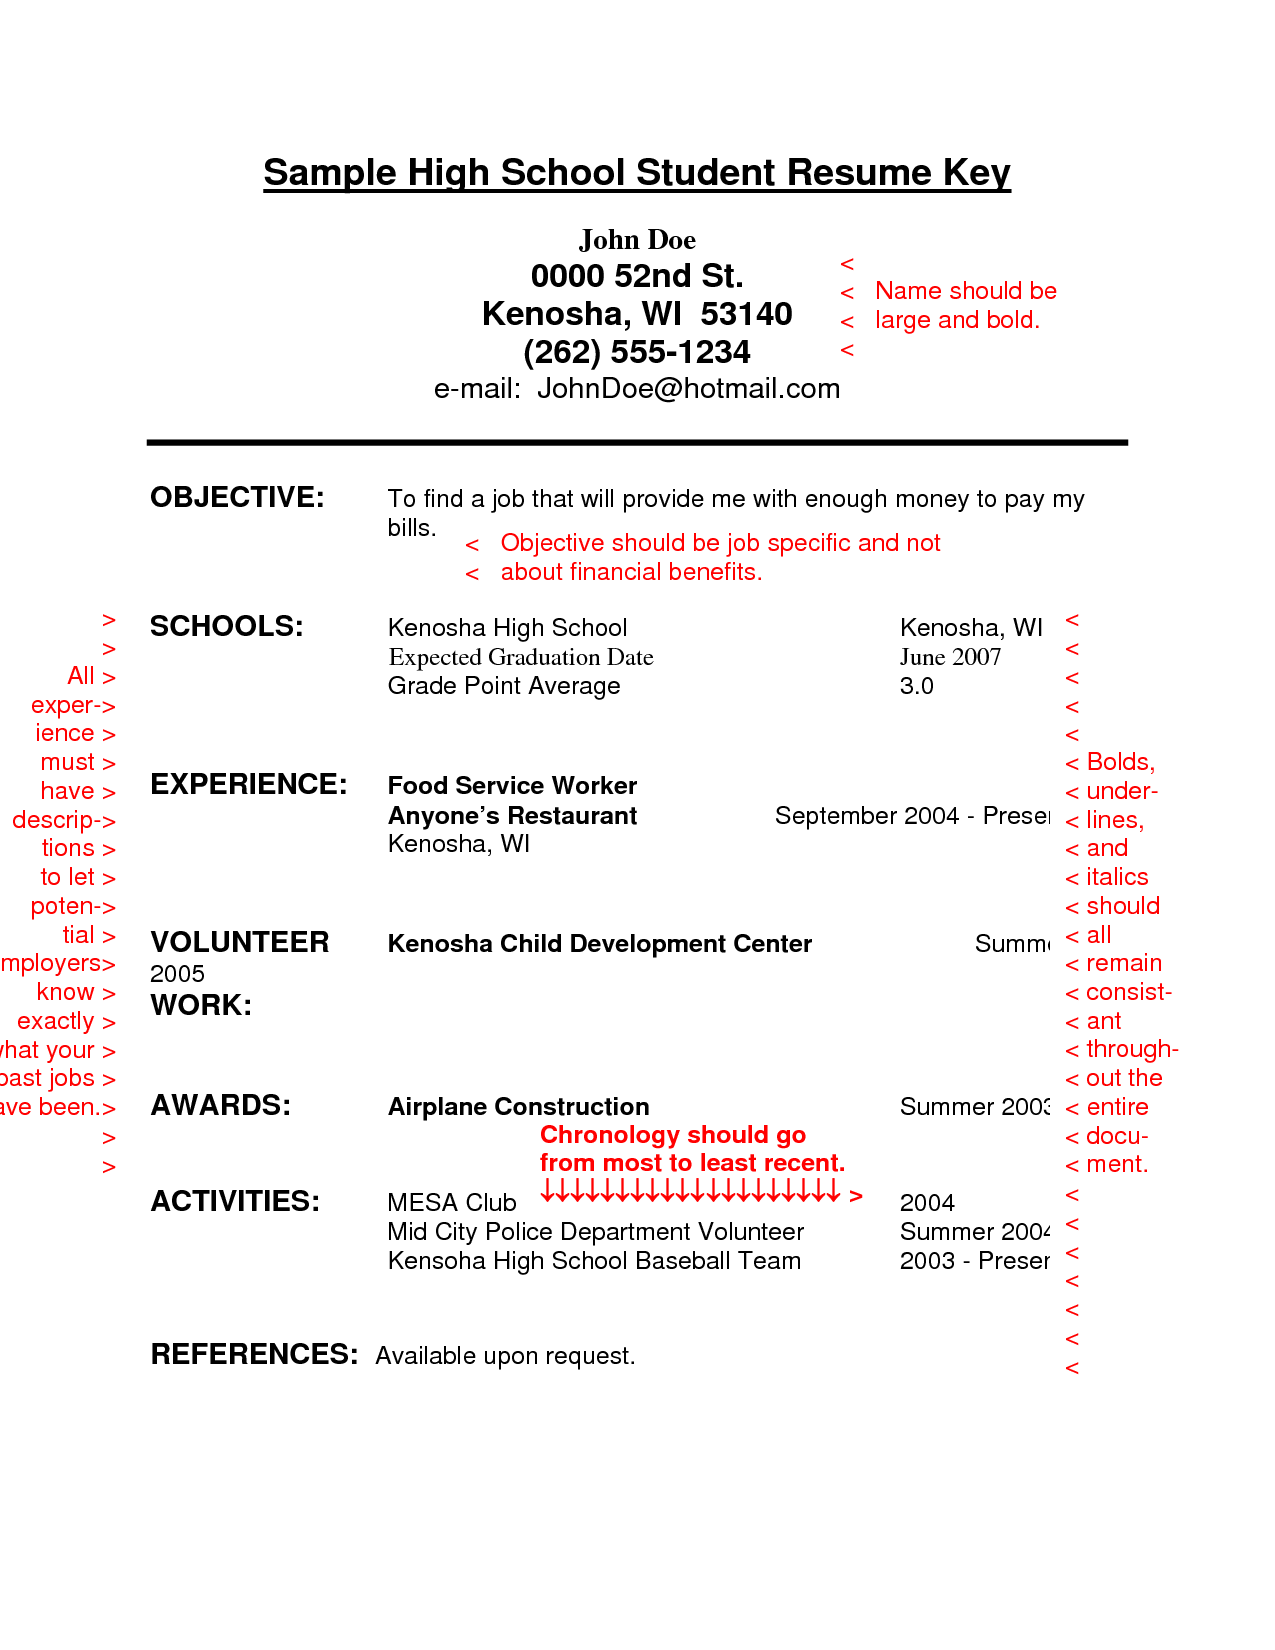 Resume Sample For High School Students With No Experience    Http://www.resumecareer.info/resume Sample  For High School Students With No Experience 11/